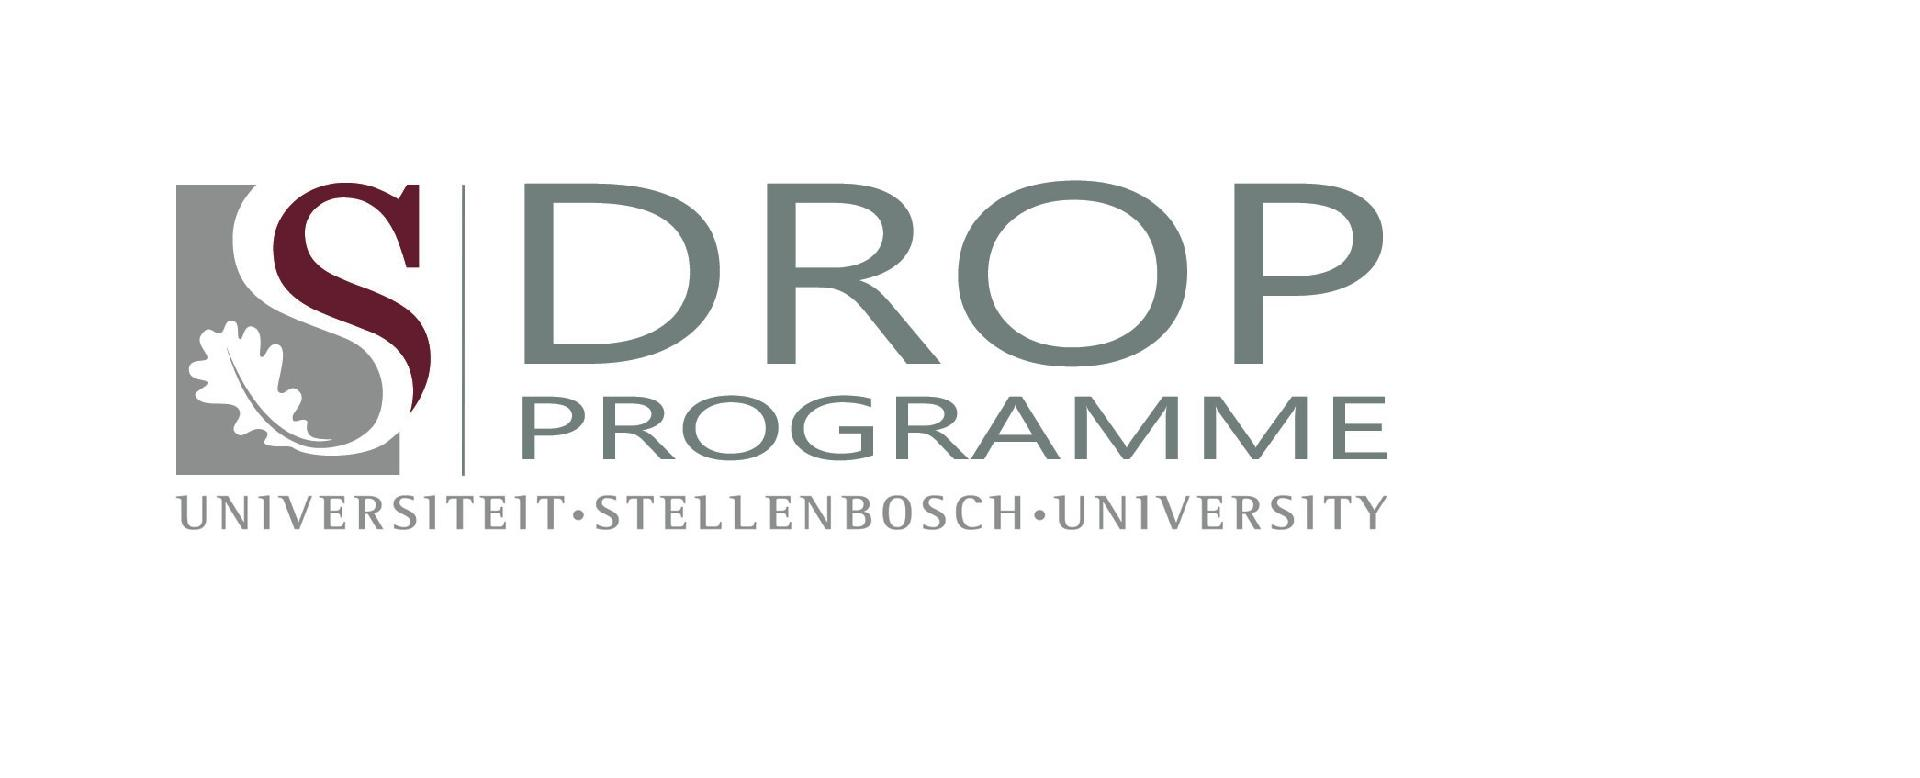 University of Stellenbosch Development and Rule of Law Programme (DROP)